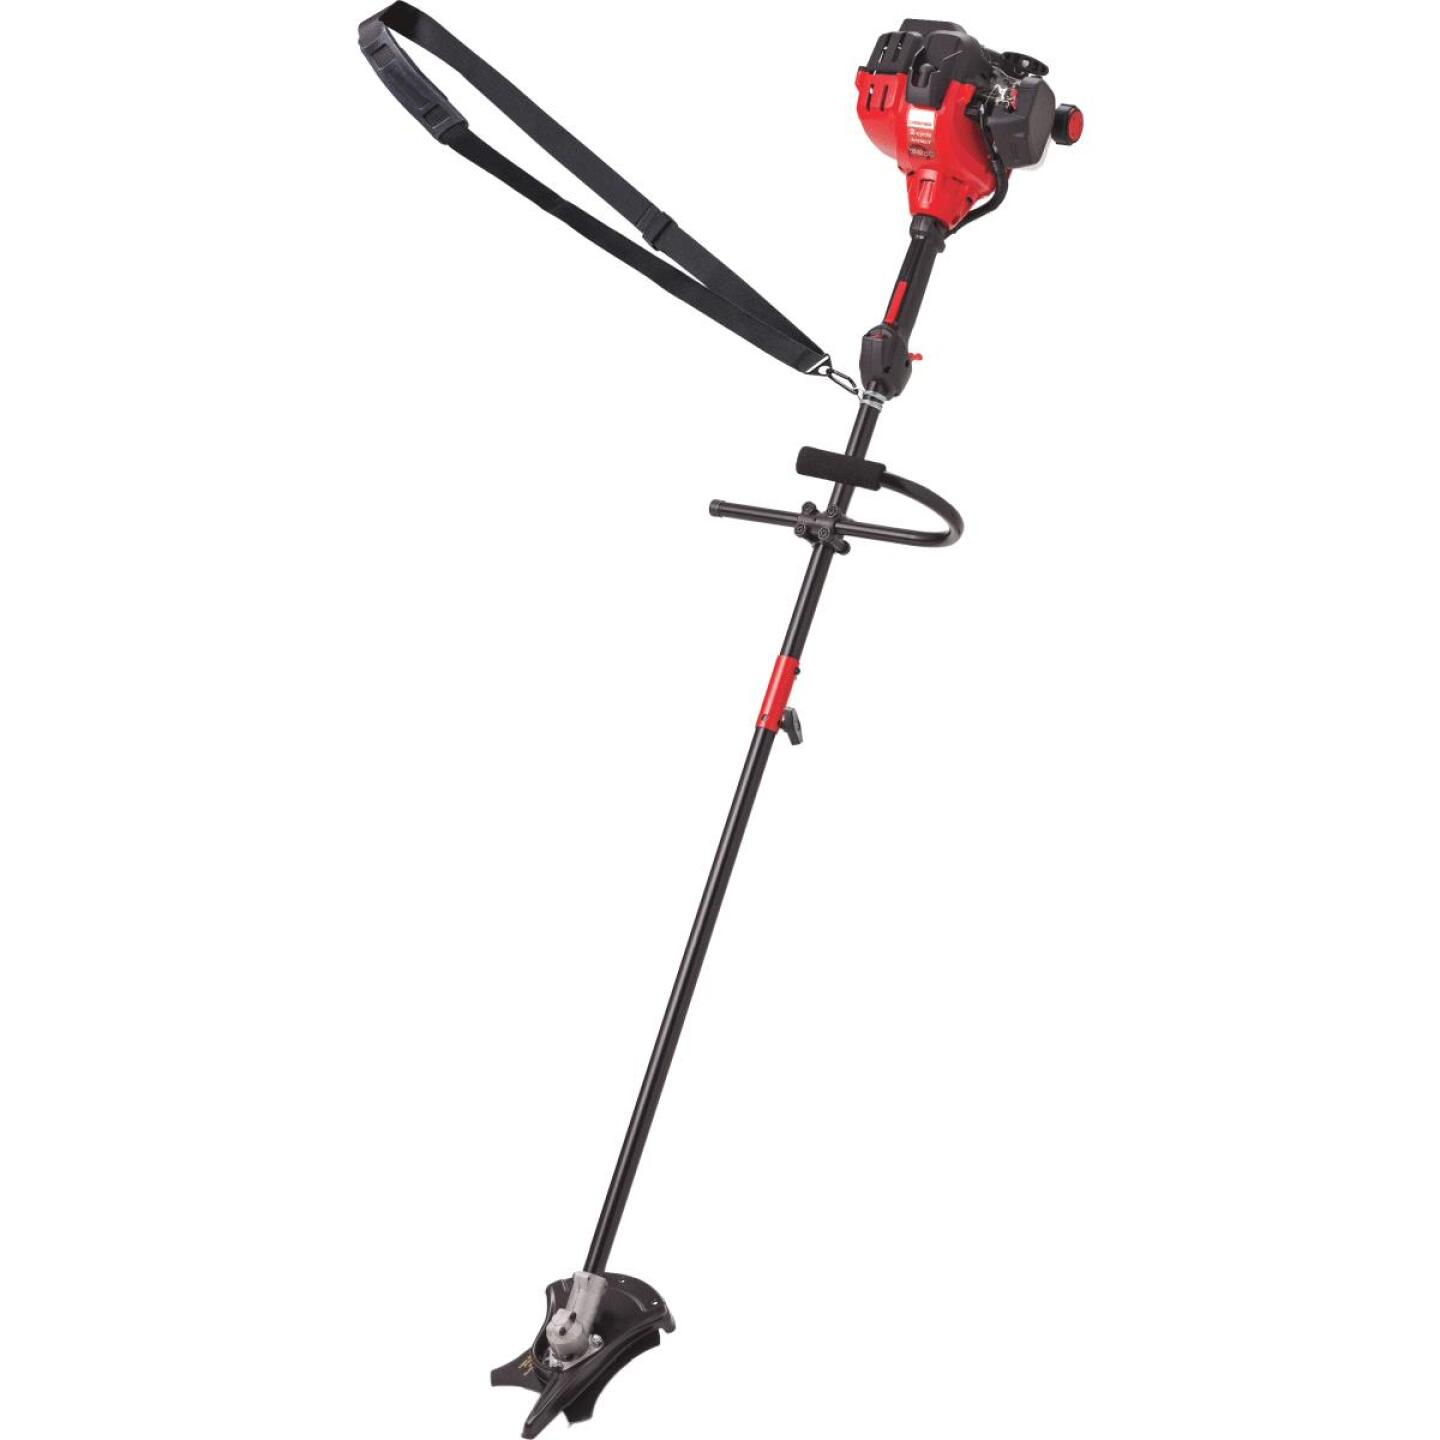 Troy-Bilt TB272BC 27cc 2-Cycle Straight Shaft Gas Brushcutter Image 1